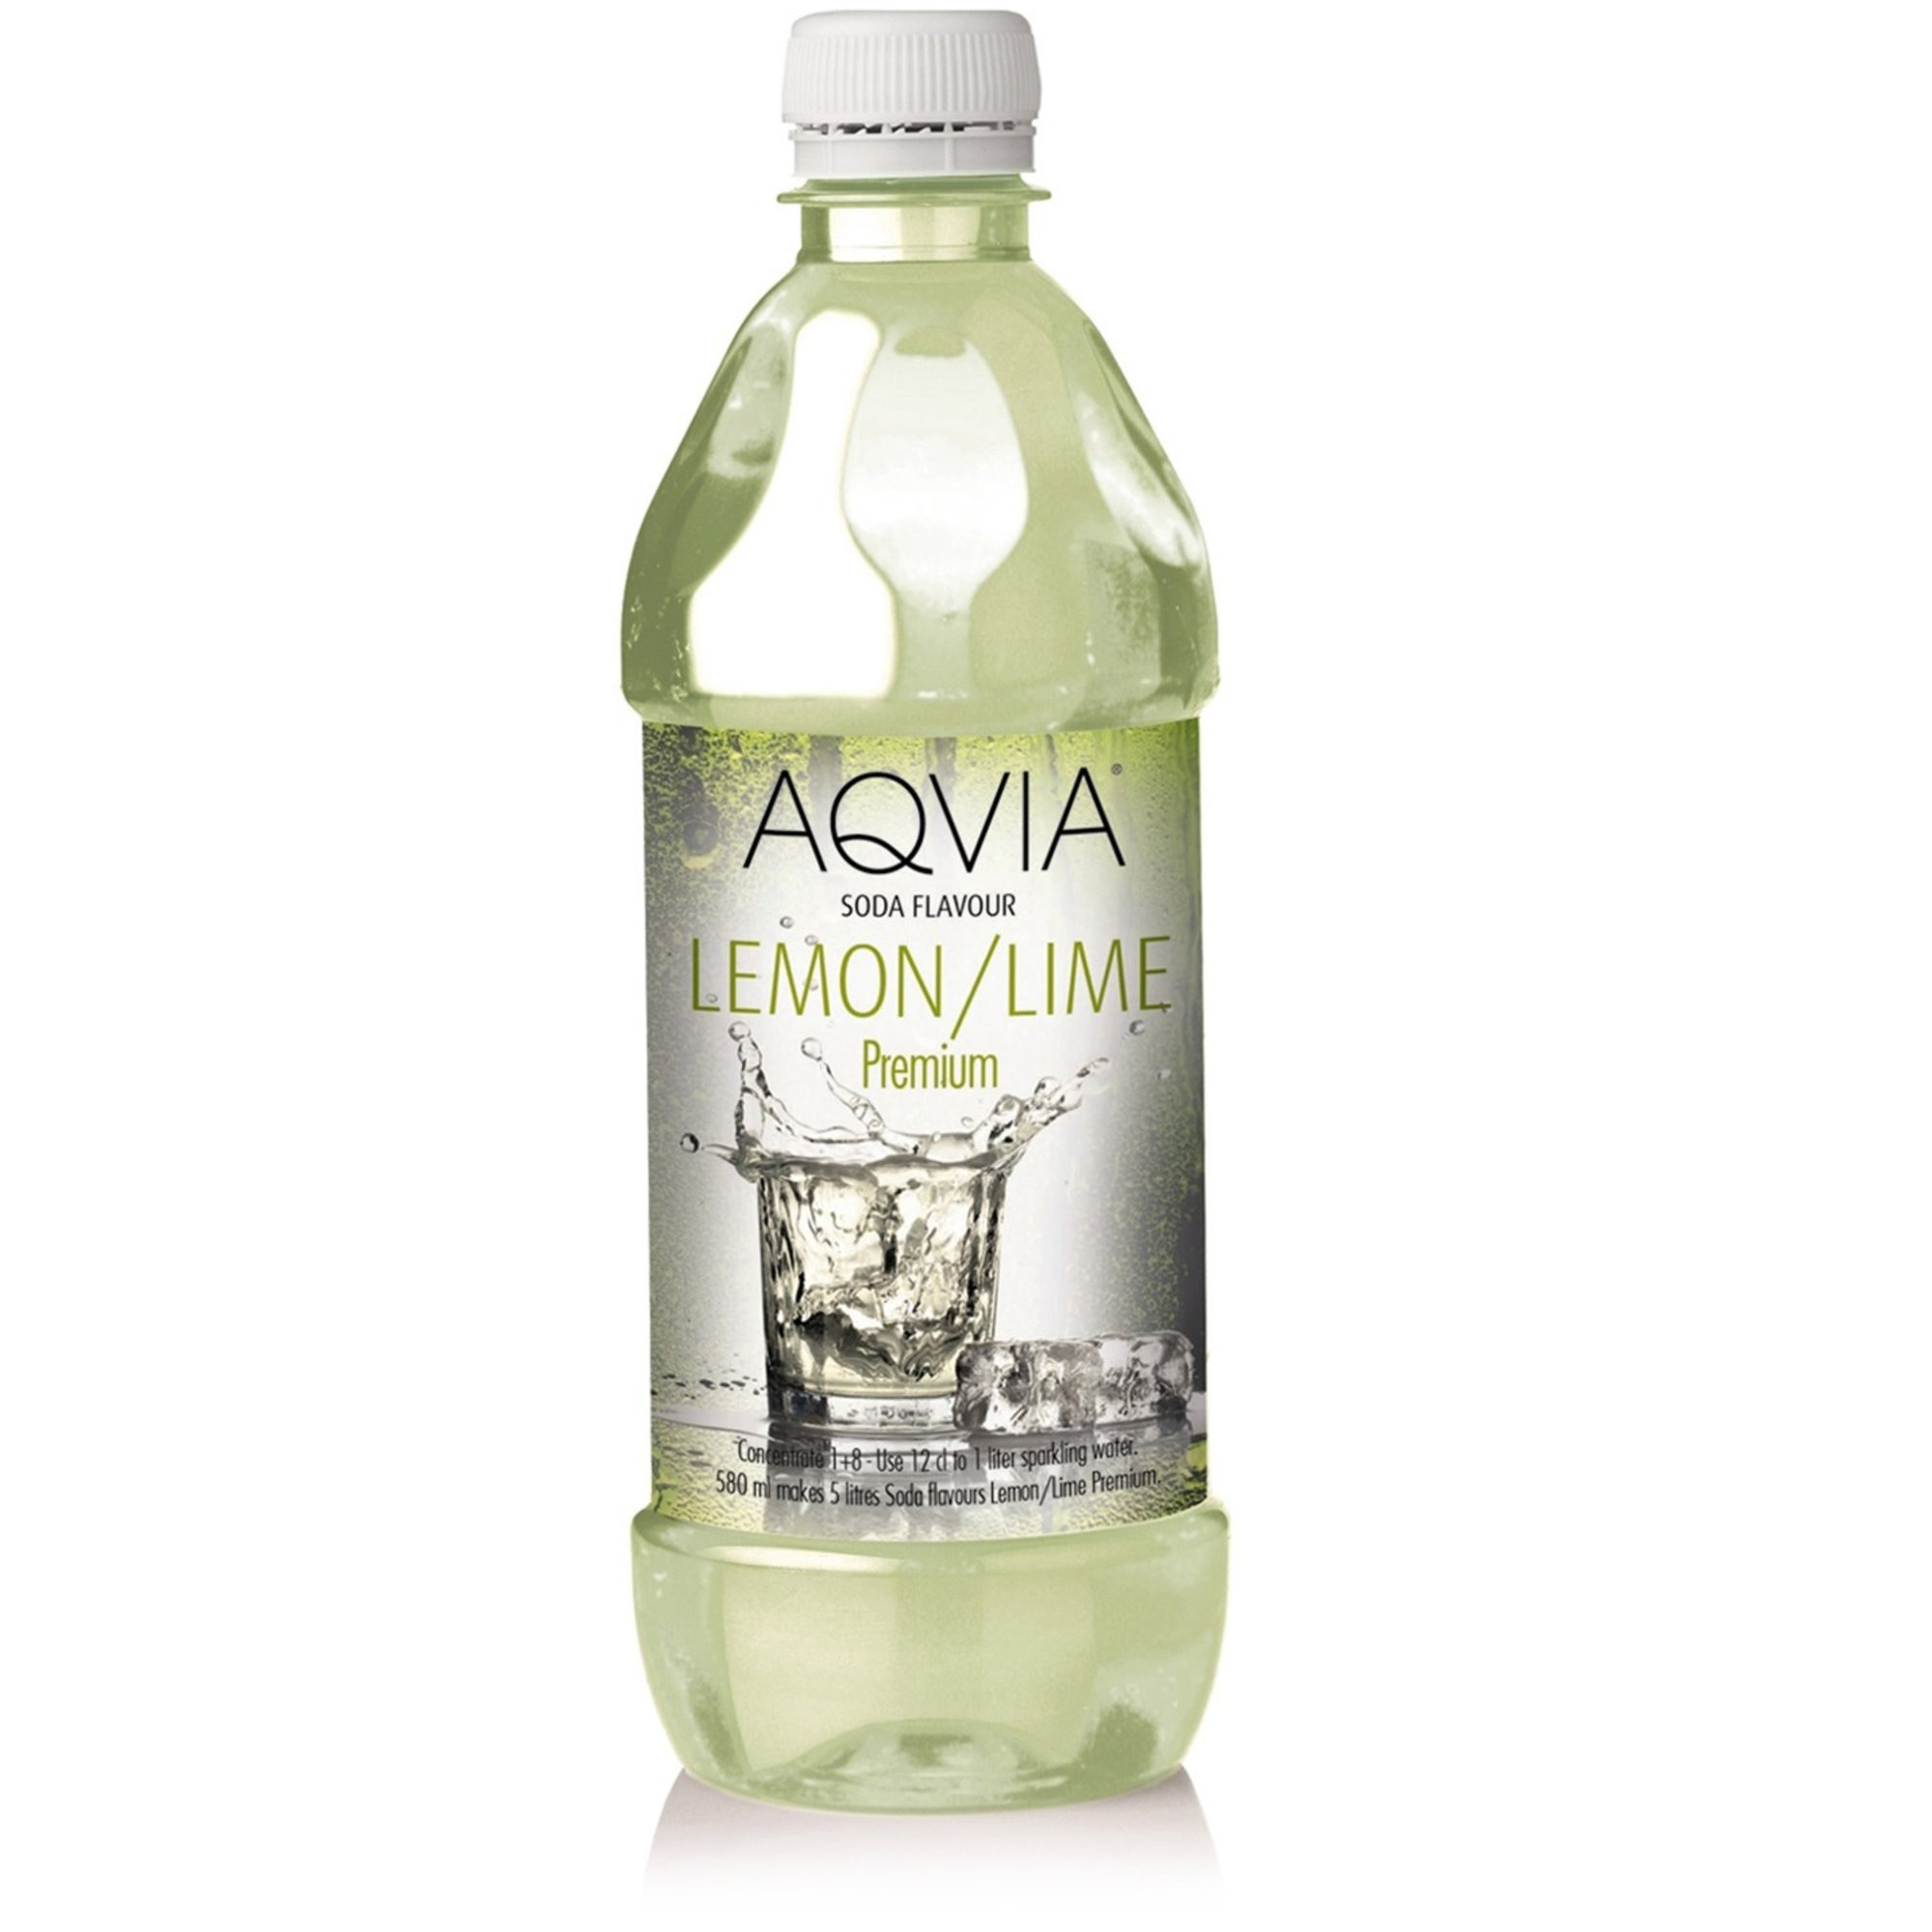 Aqvia Citron/lime